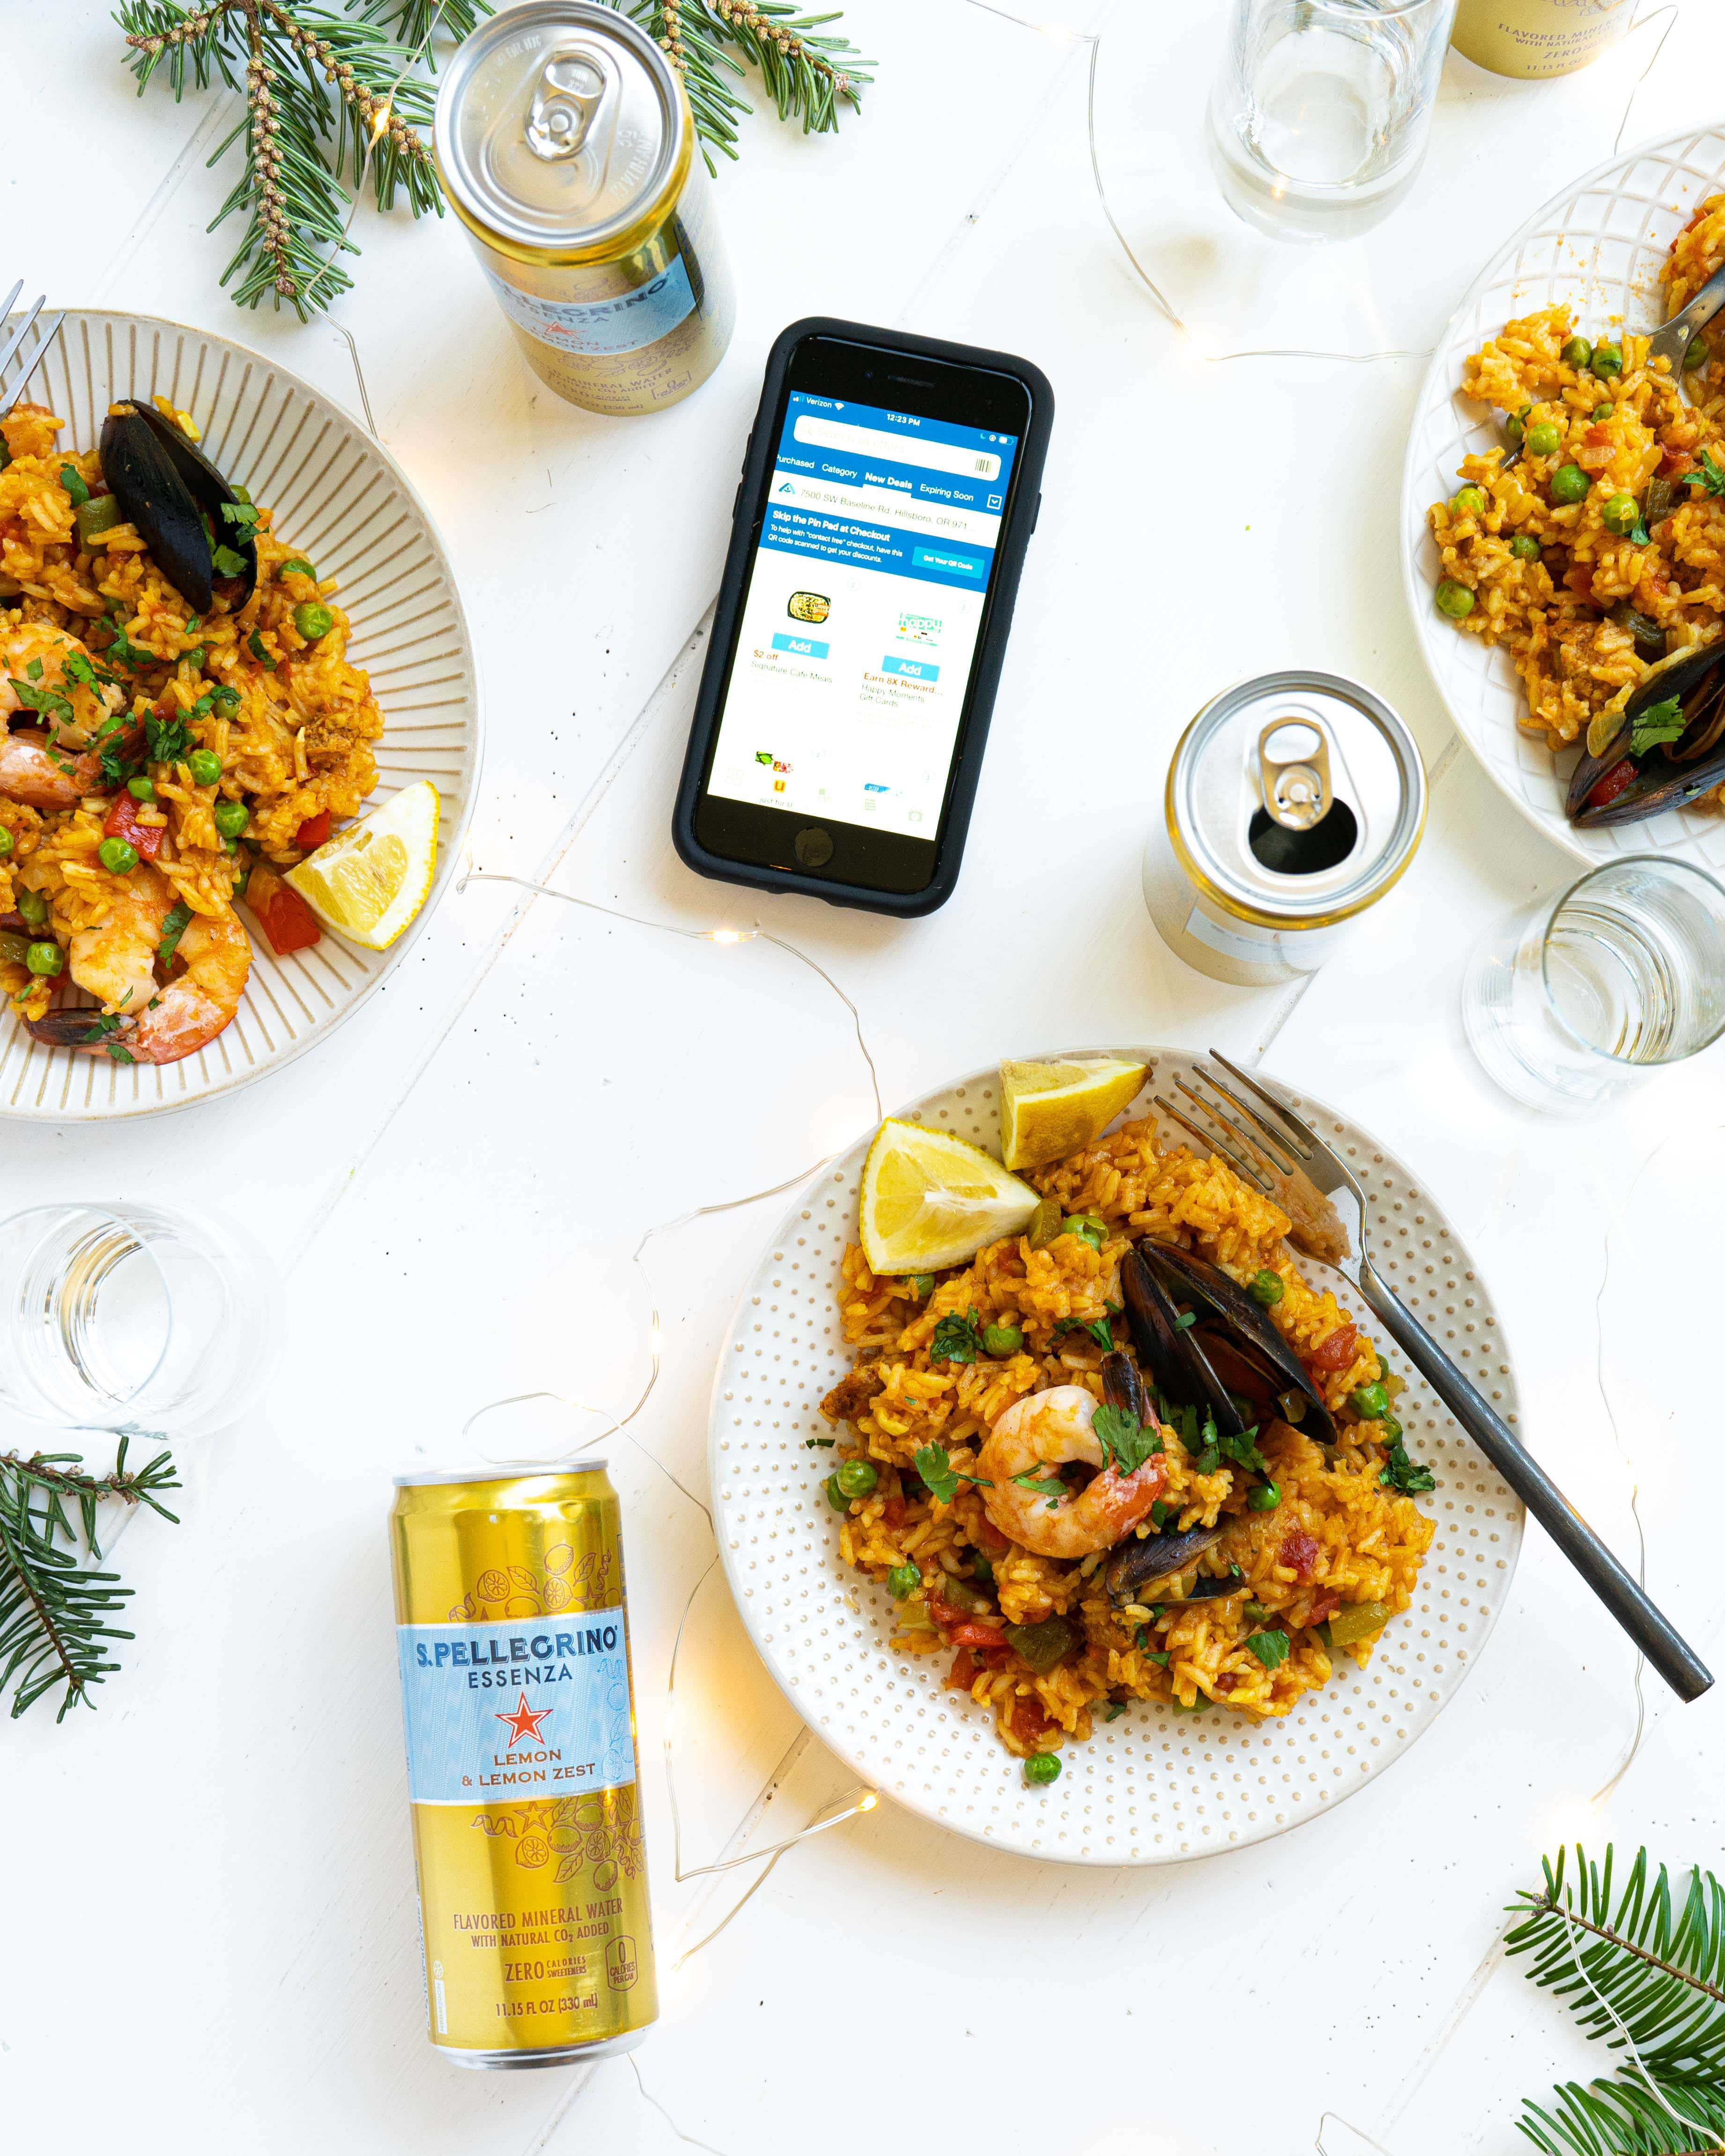 Plates of seafood paella next to cans, glasses and a phone